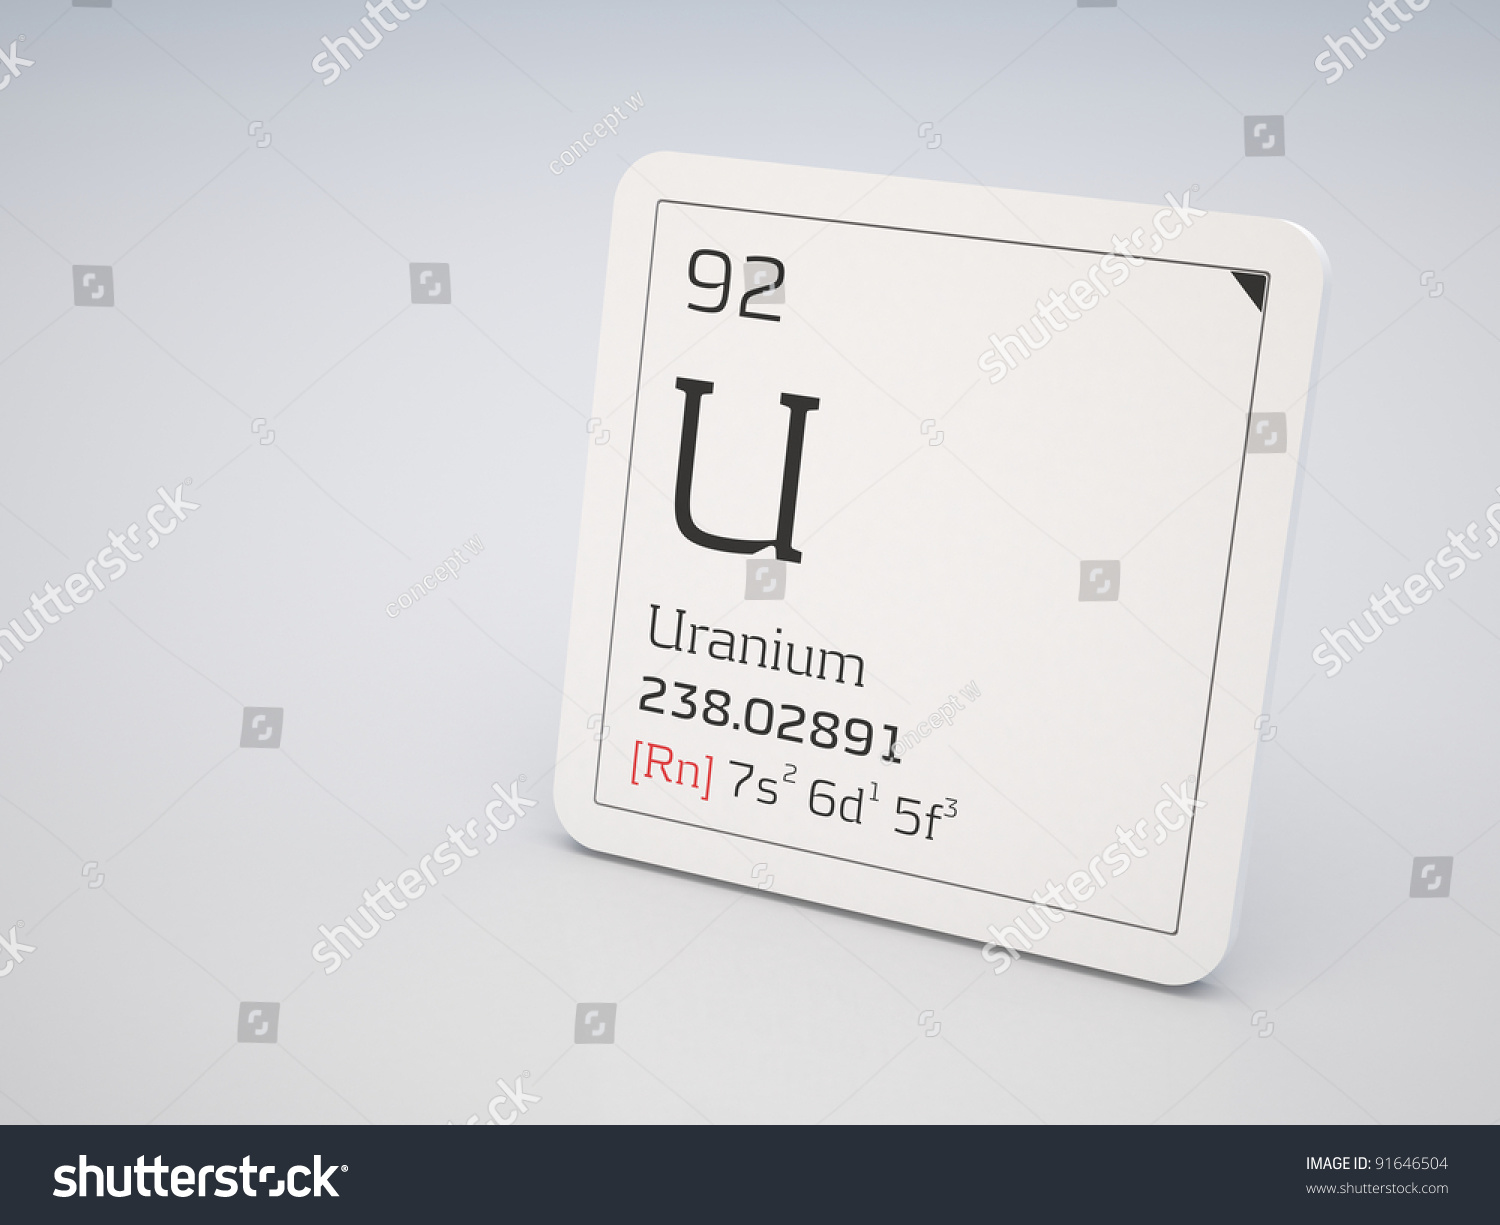 Uranium element periodic table stock illustration 91646504 uranium element of the periodic table gamestrikefo Image collections